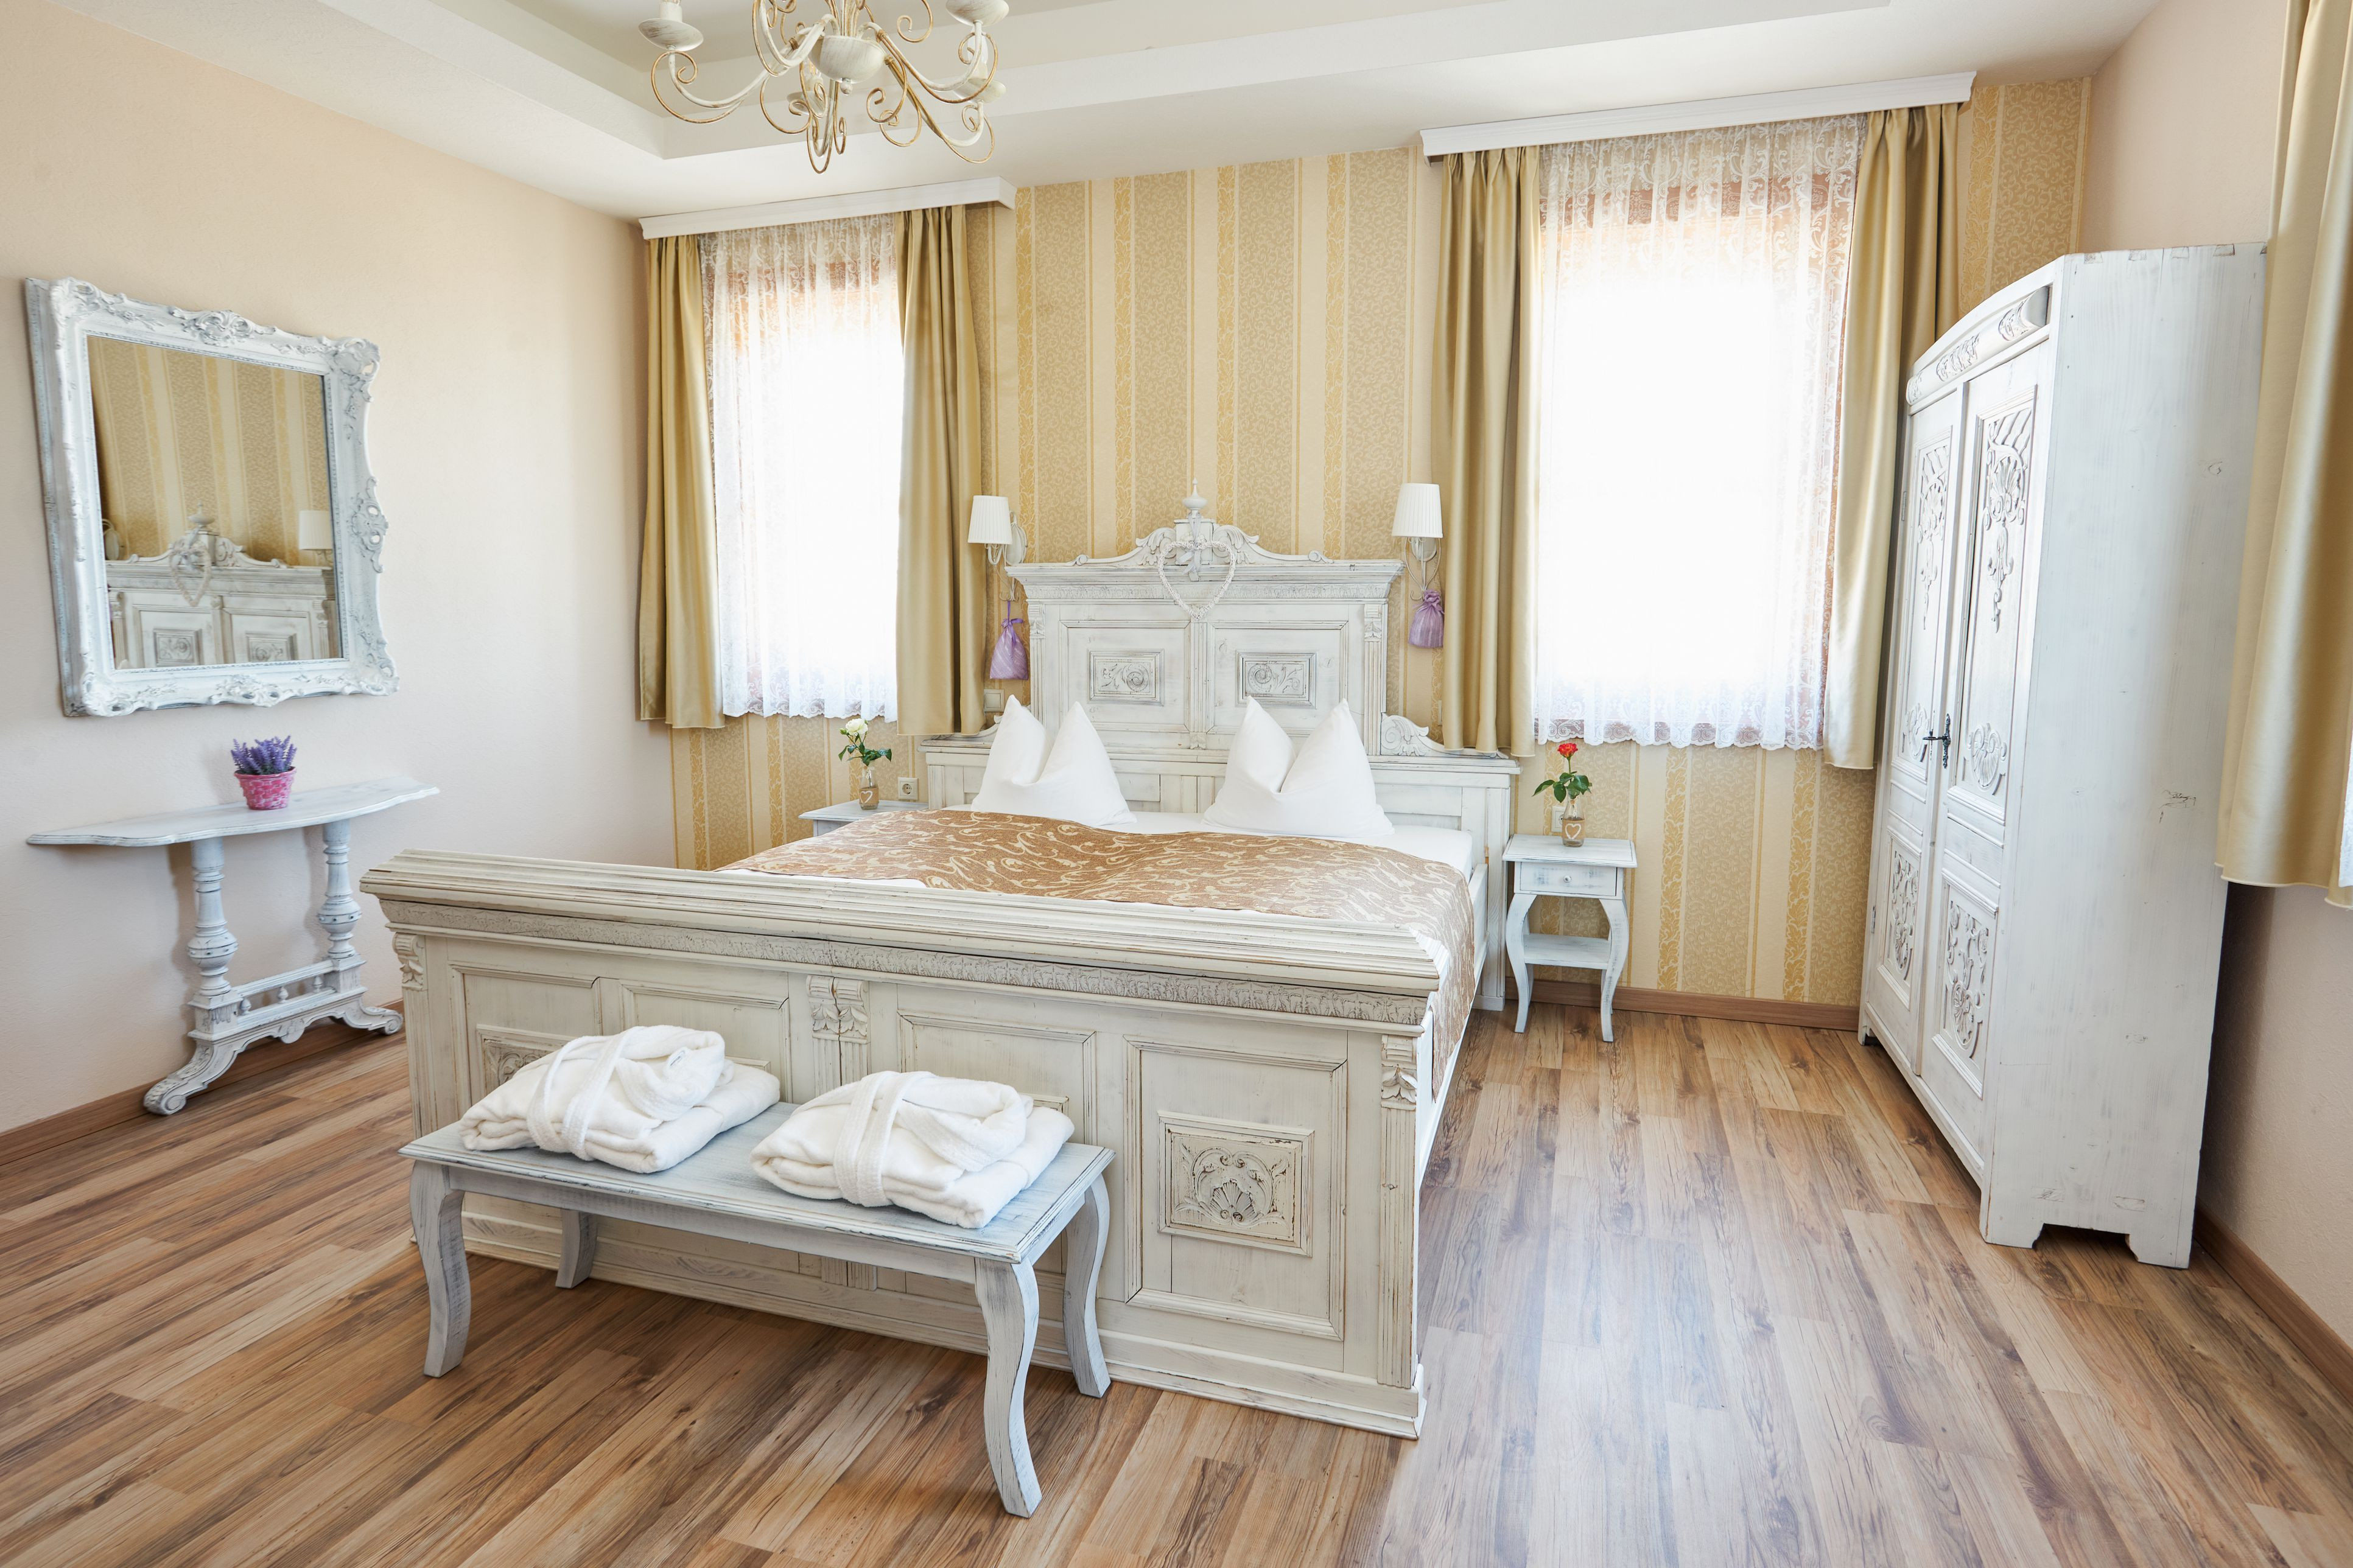 weight of hardwood flooring per square foot of how does luxury vinyl flooring differ from standard vinyl within hotel room 840458542 5aefb33e3de42300389ed58d